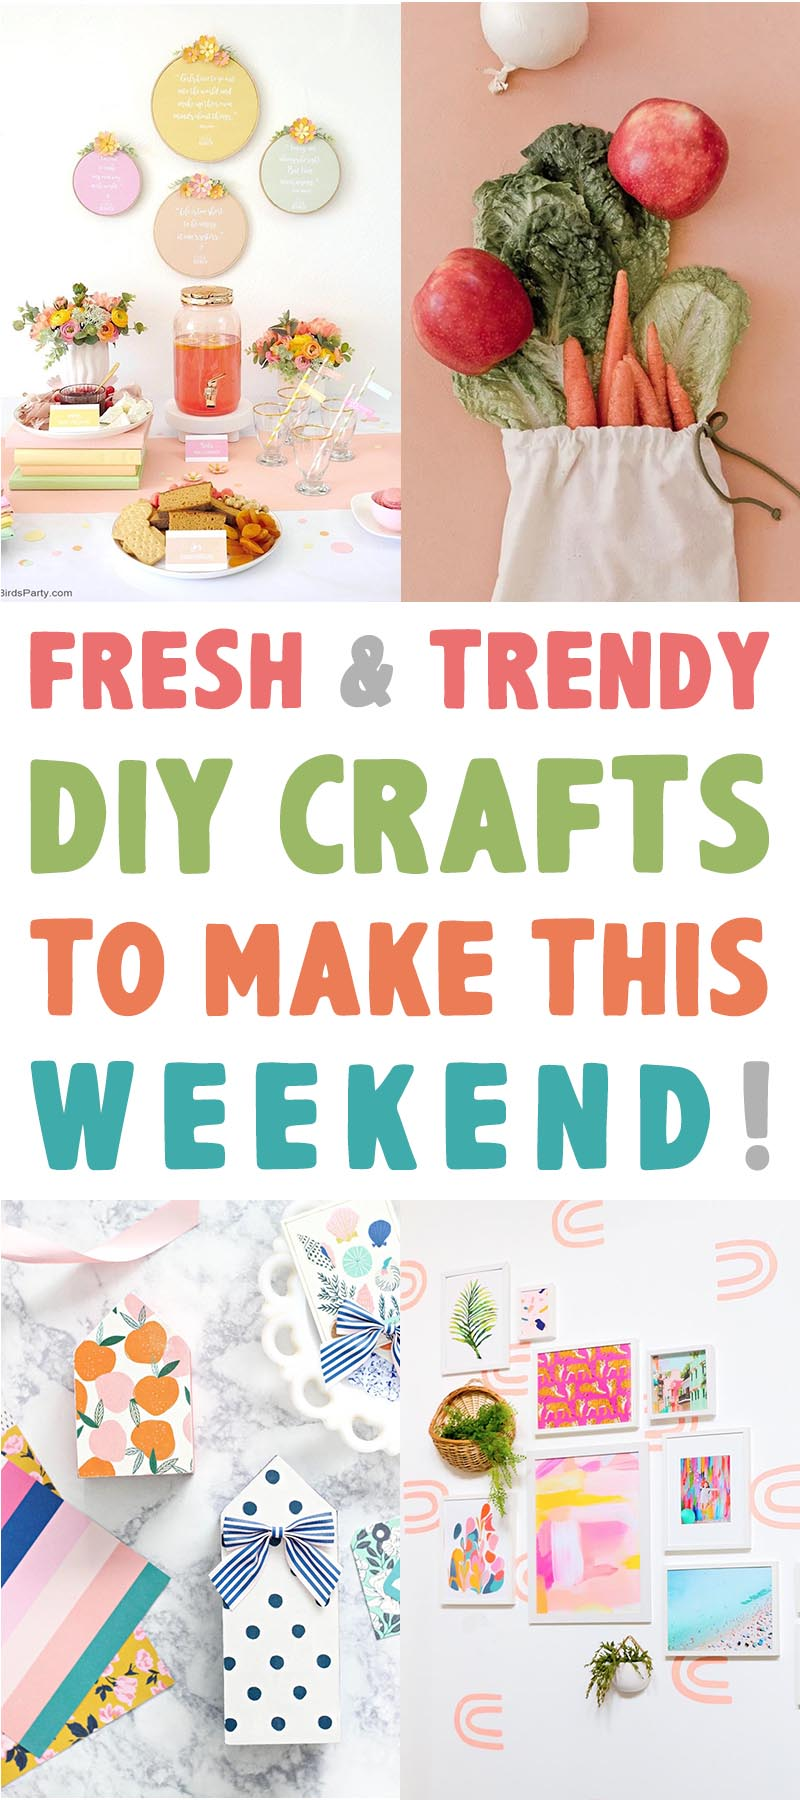 Time for some Fresh and Trendy DIY Crafts To Make This Weekend. So many inspirational Crafts are waiting for you to choose from!